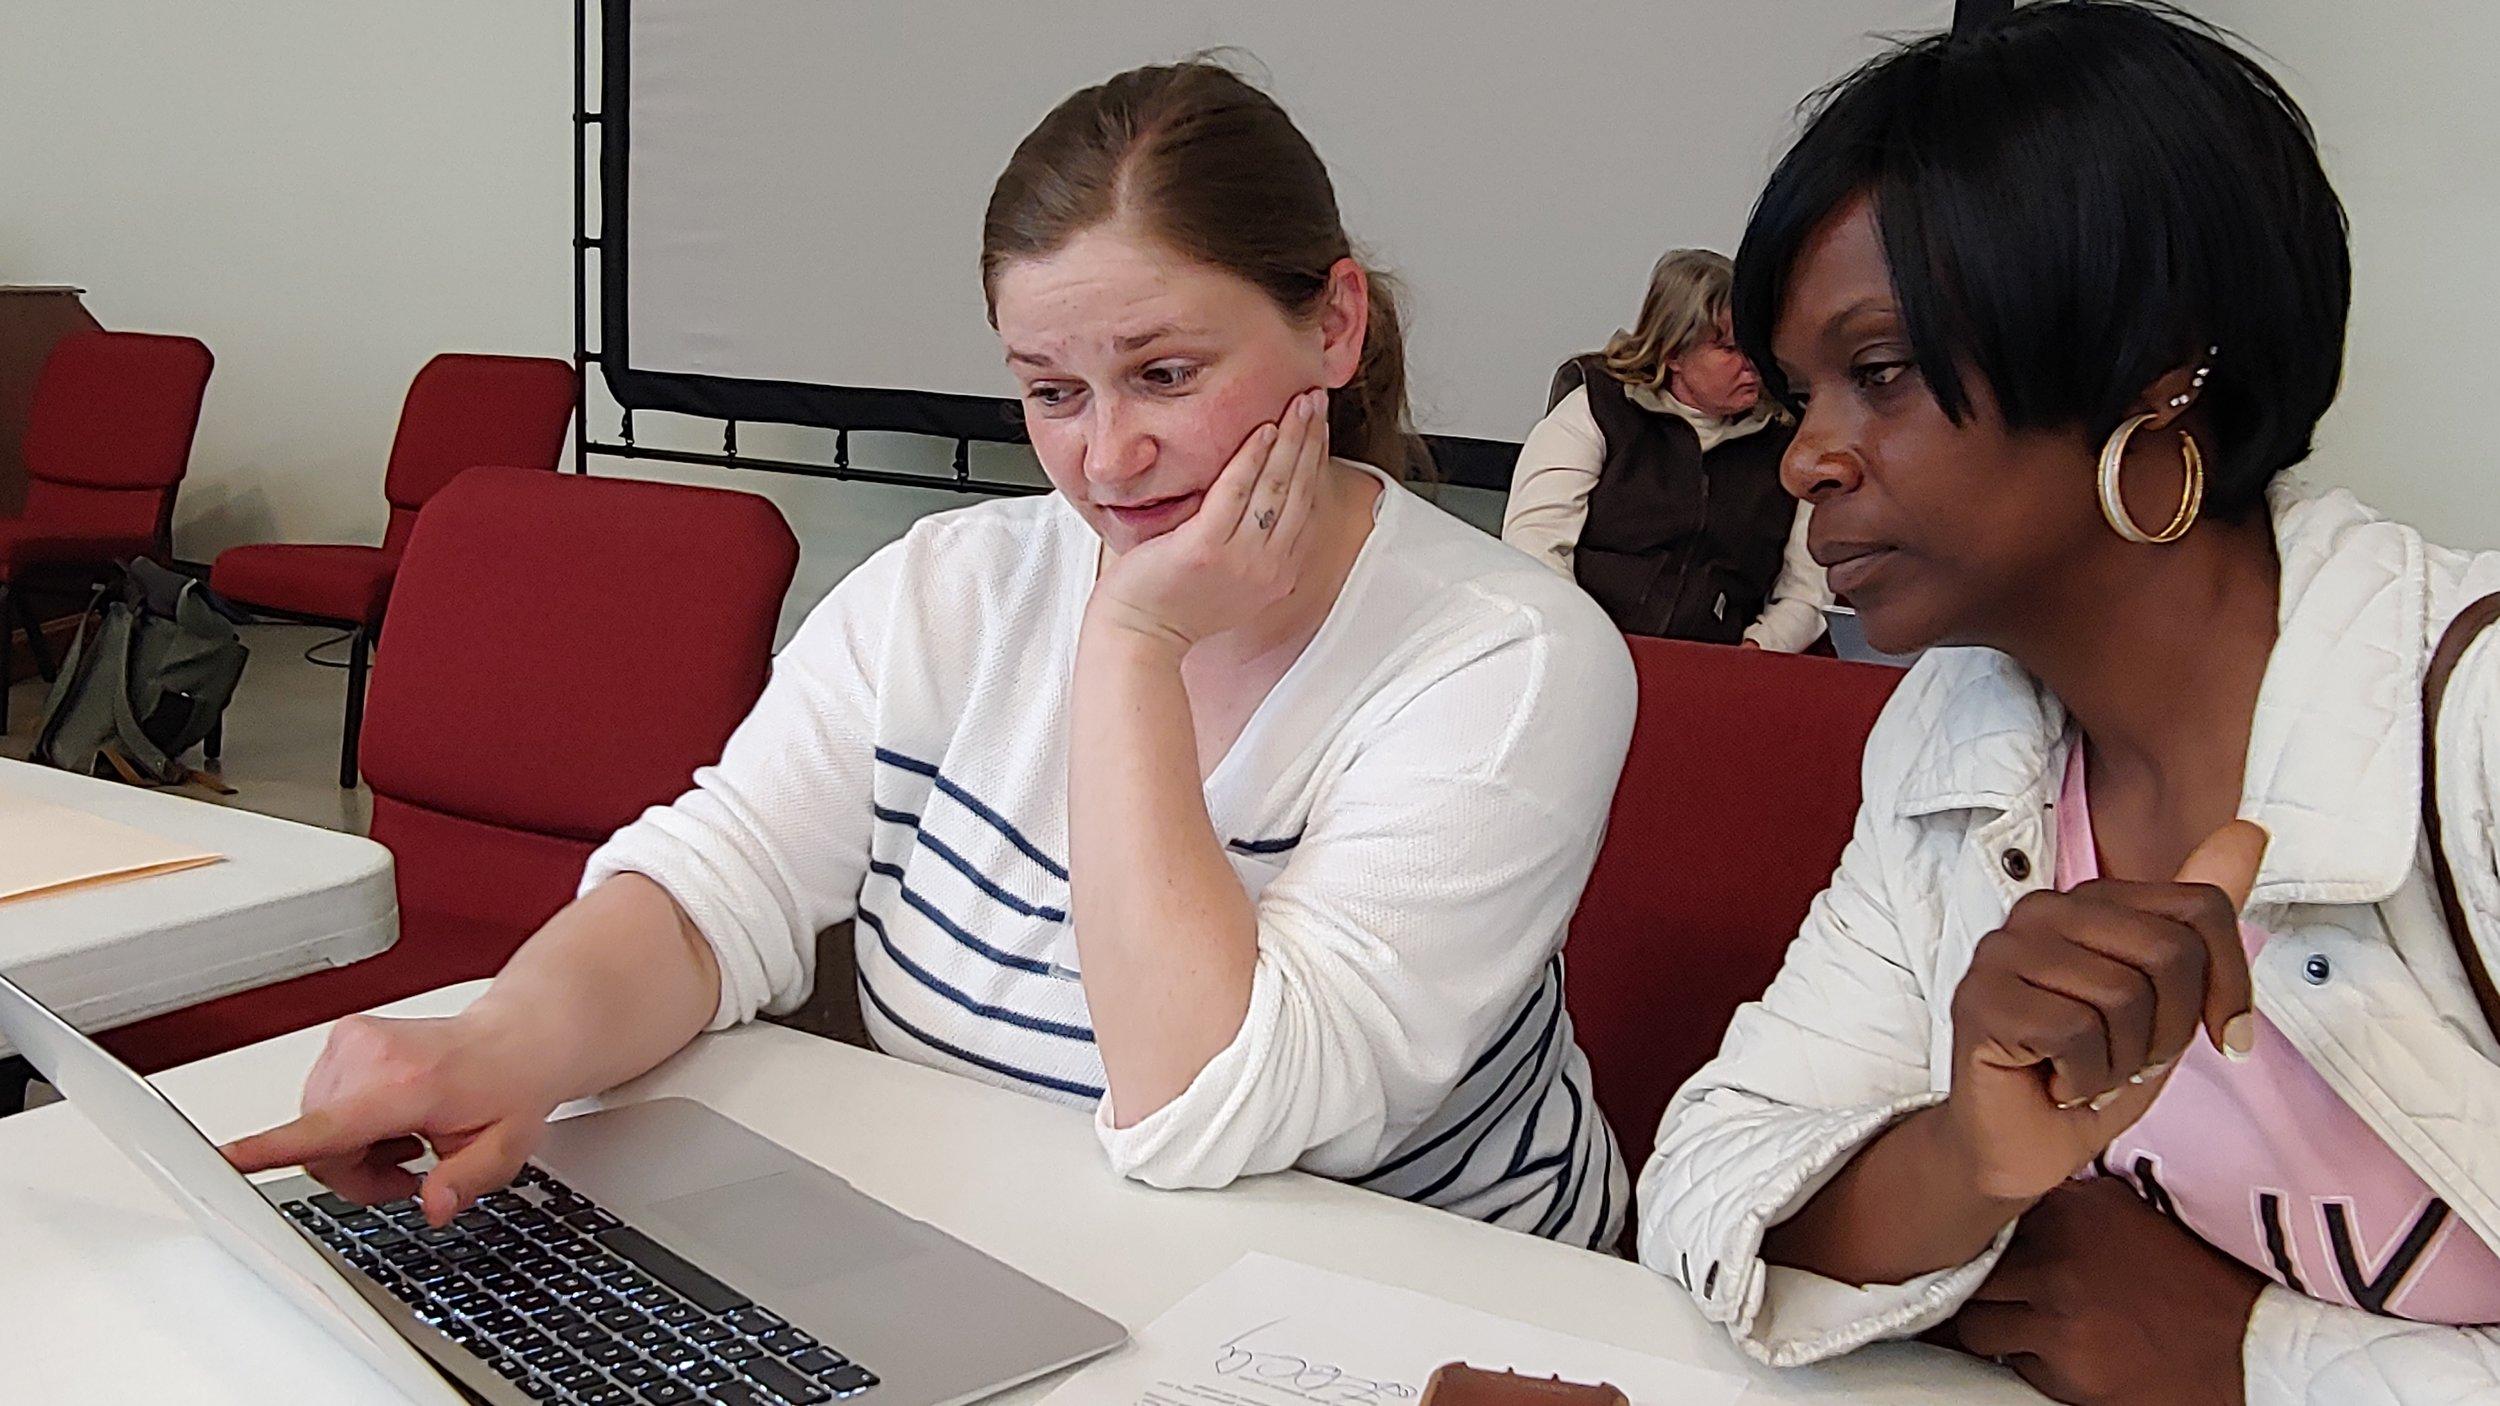 Volunteer UMKC student Beth Beavers consults with Tamara Sigars at the Expungement Day event April 27